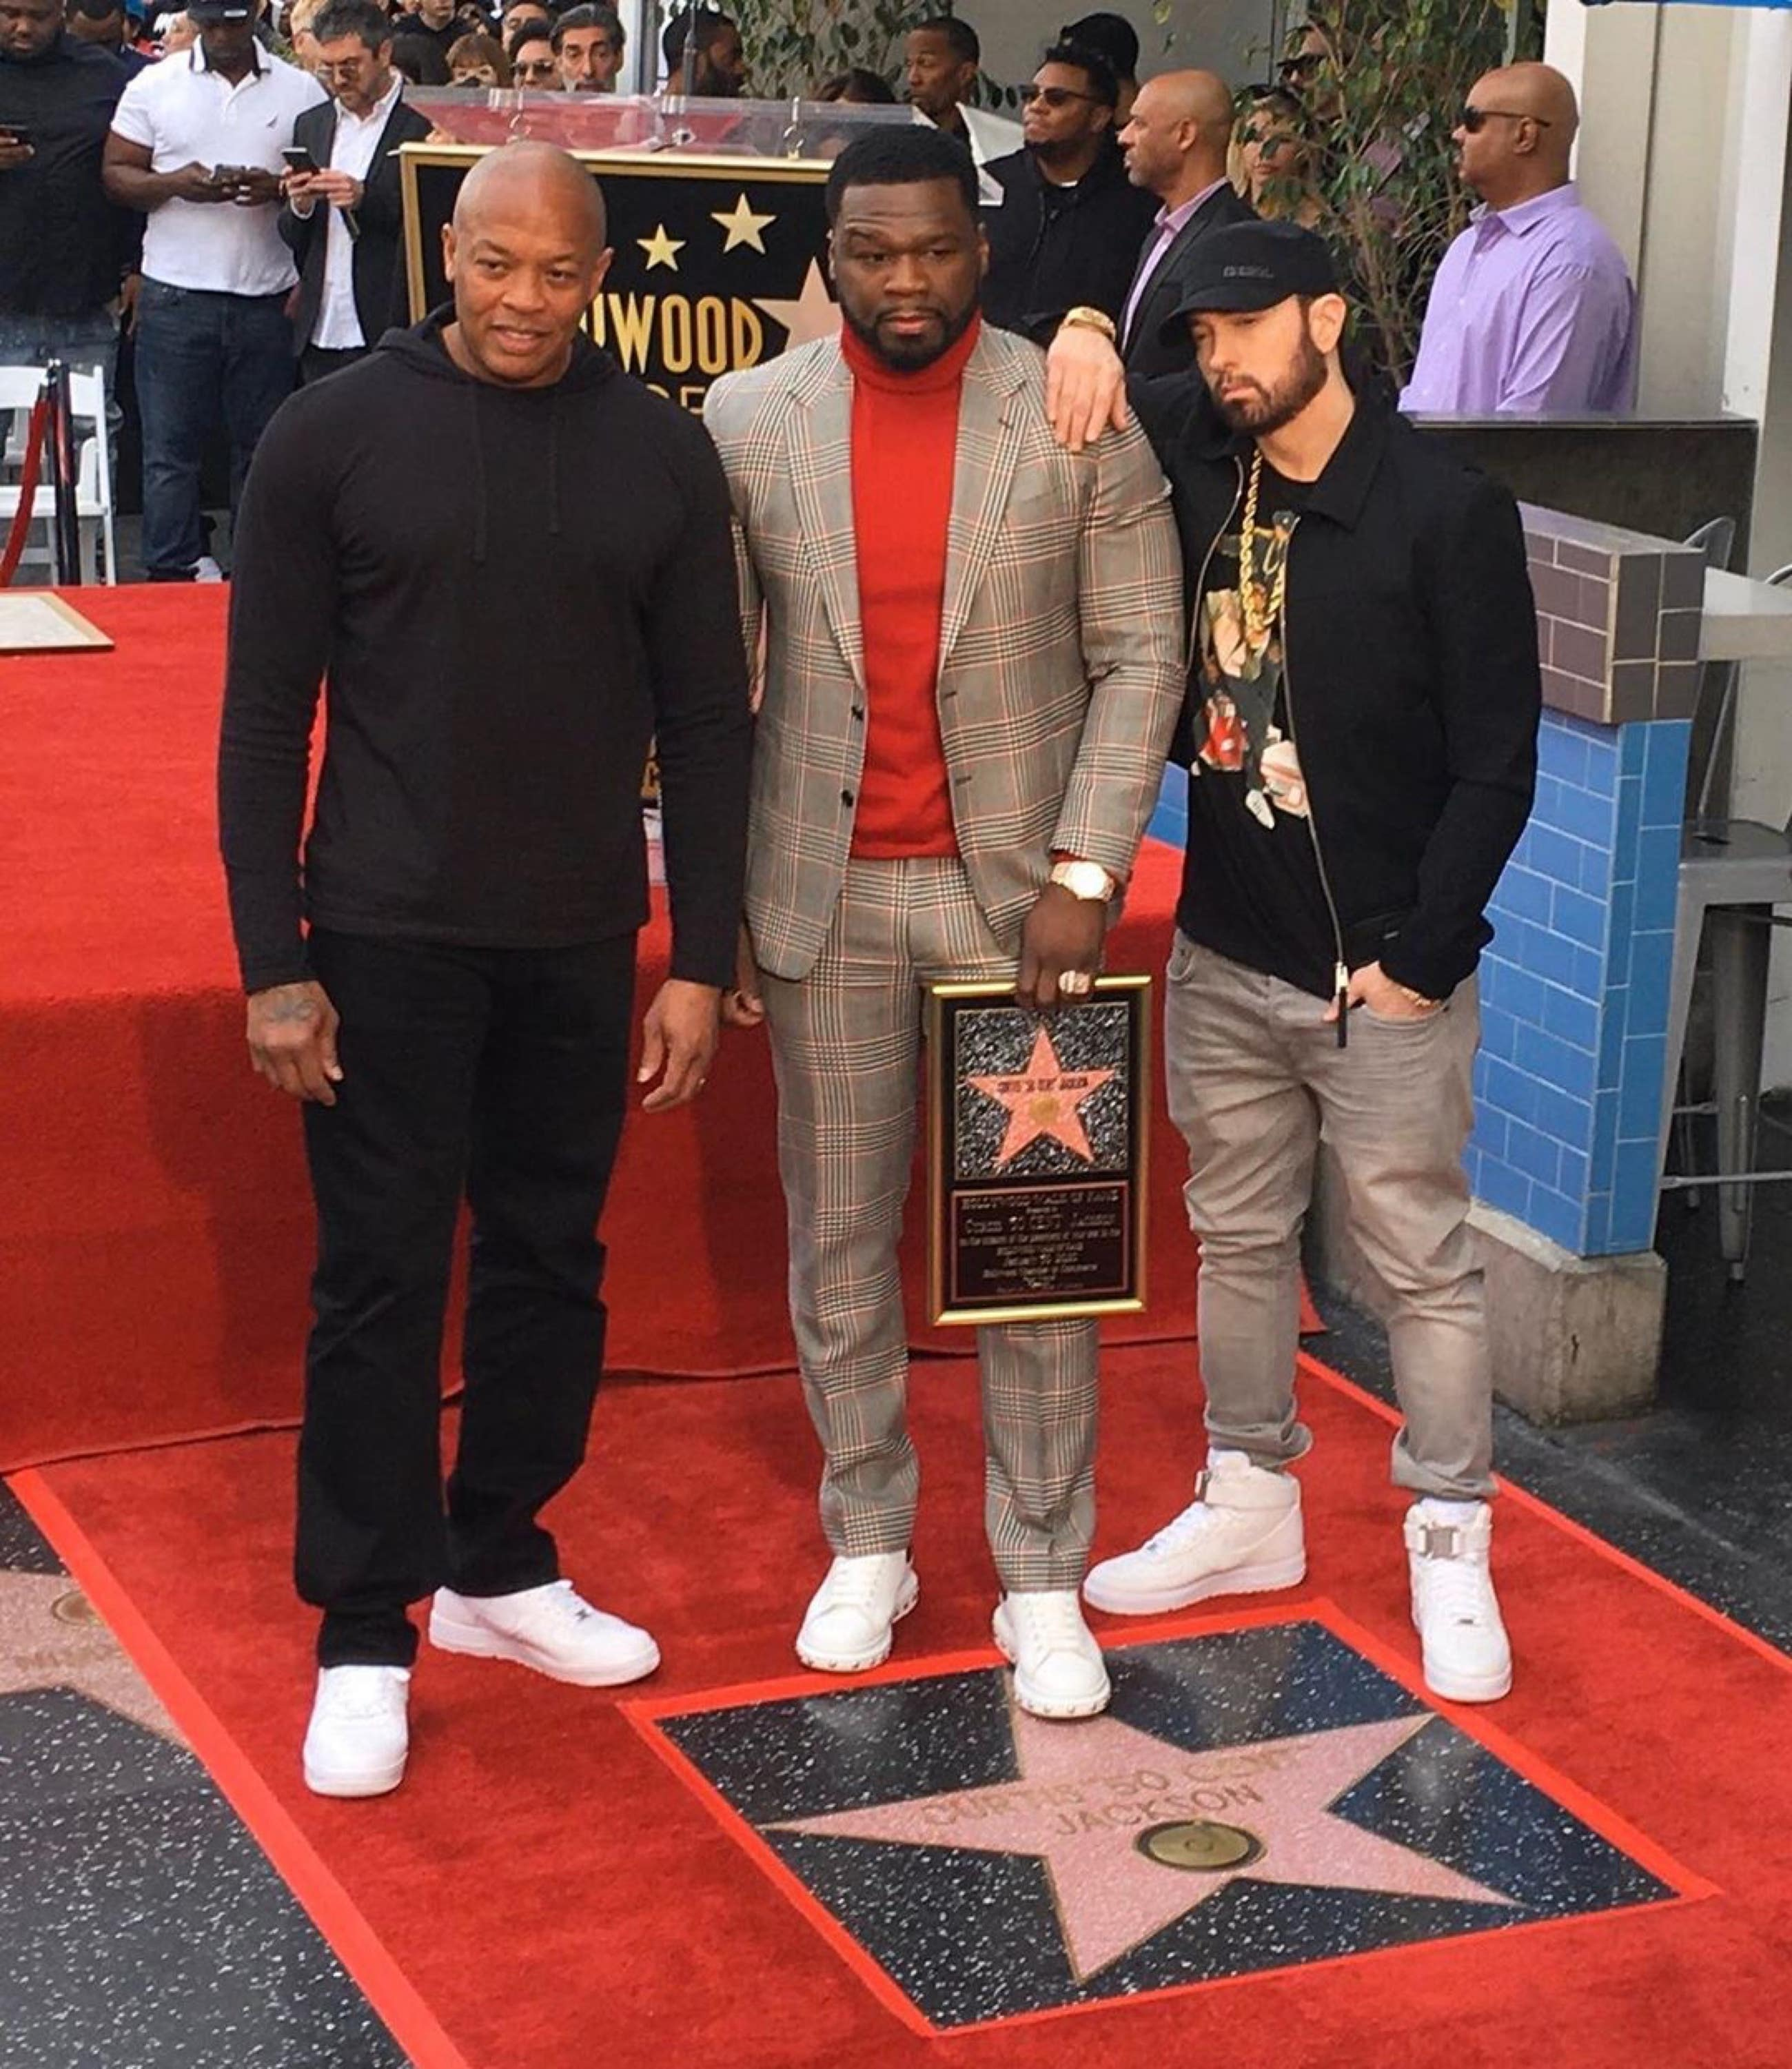 Dr. Dre, 50 Cent and Eminem at 50 Cent's Walk of Fame ceremony in Hollywood